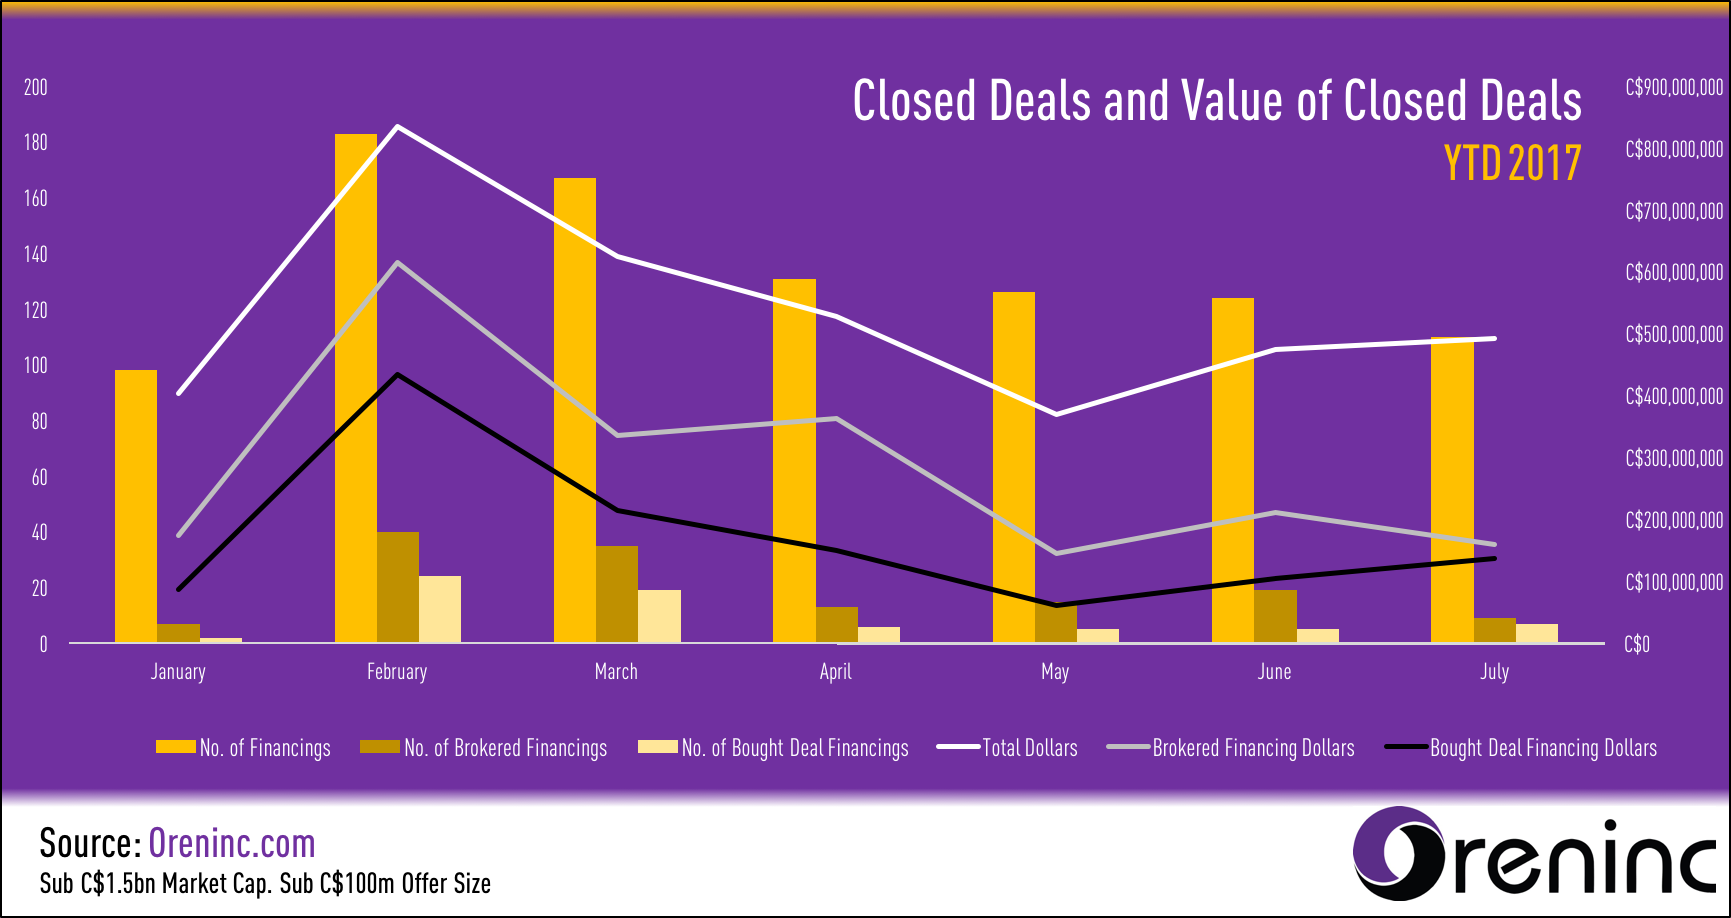 Closed Deals and Value of Closed Deals YTD 2017